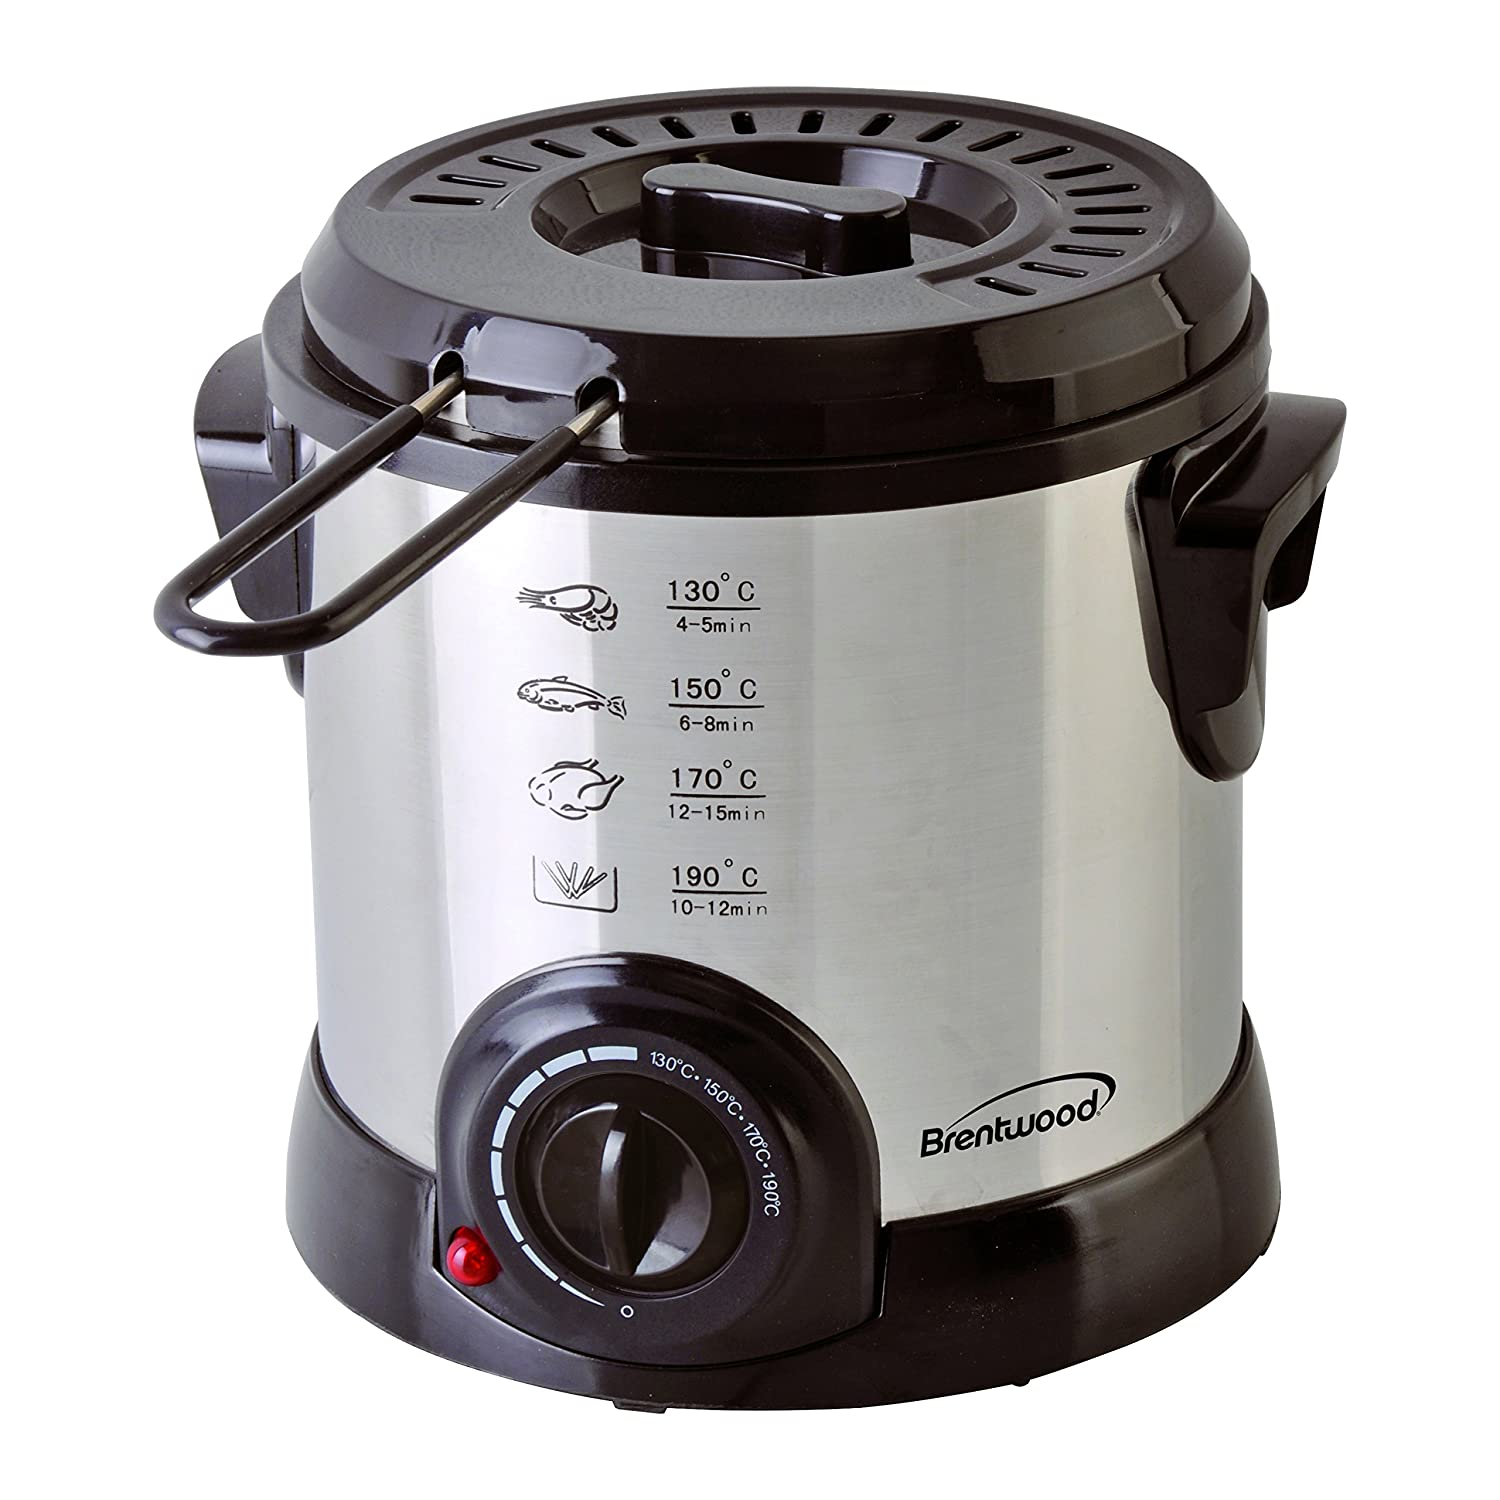 Brentwood DF-701 Electric, 1-Liter, Stainless Steel Deep Fryer, 1 Liter.